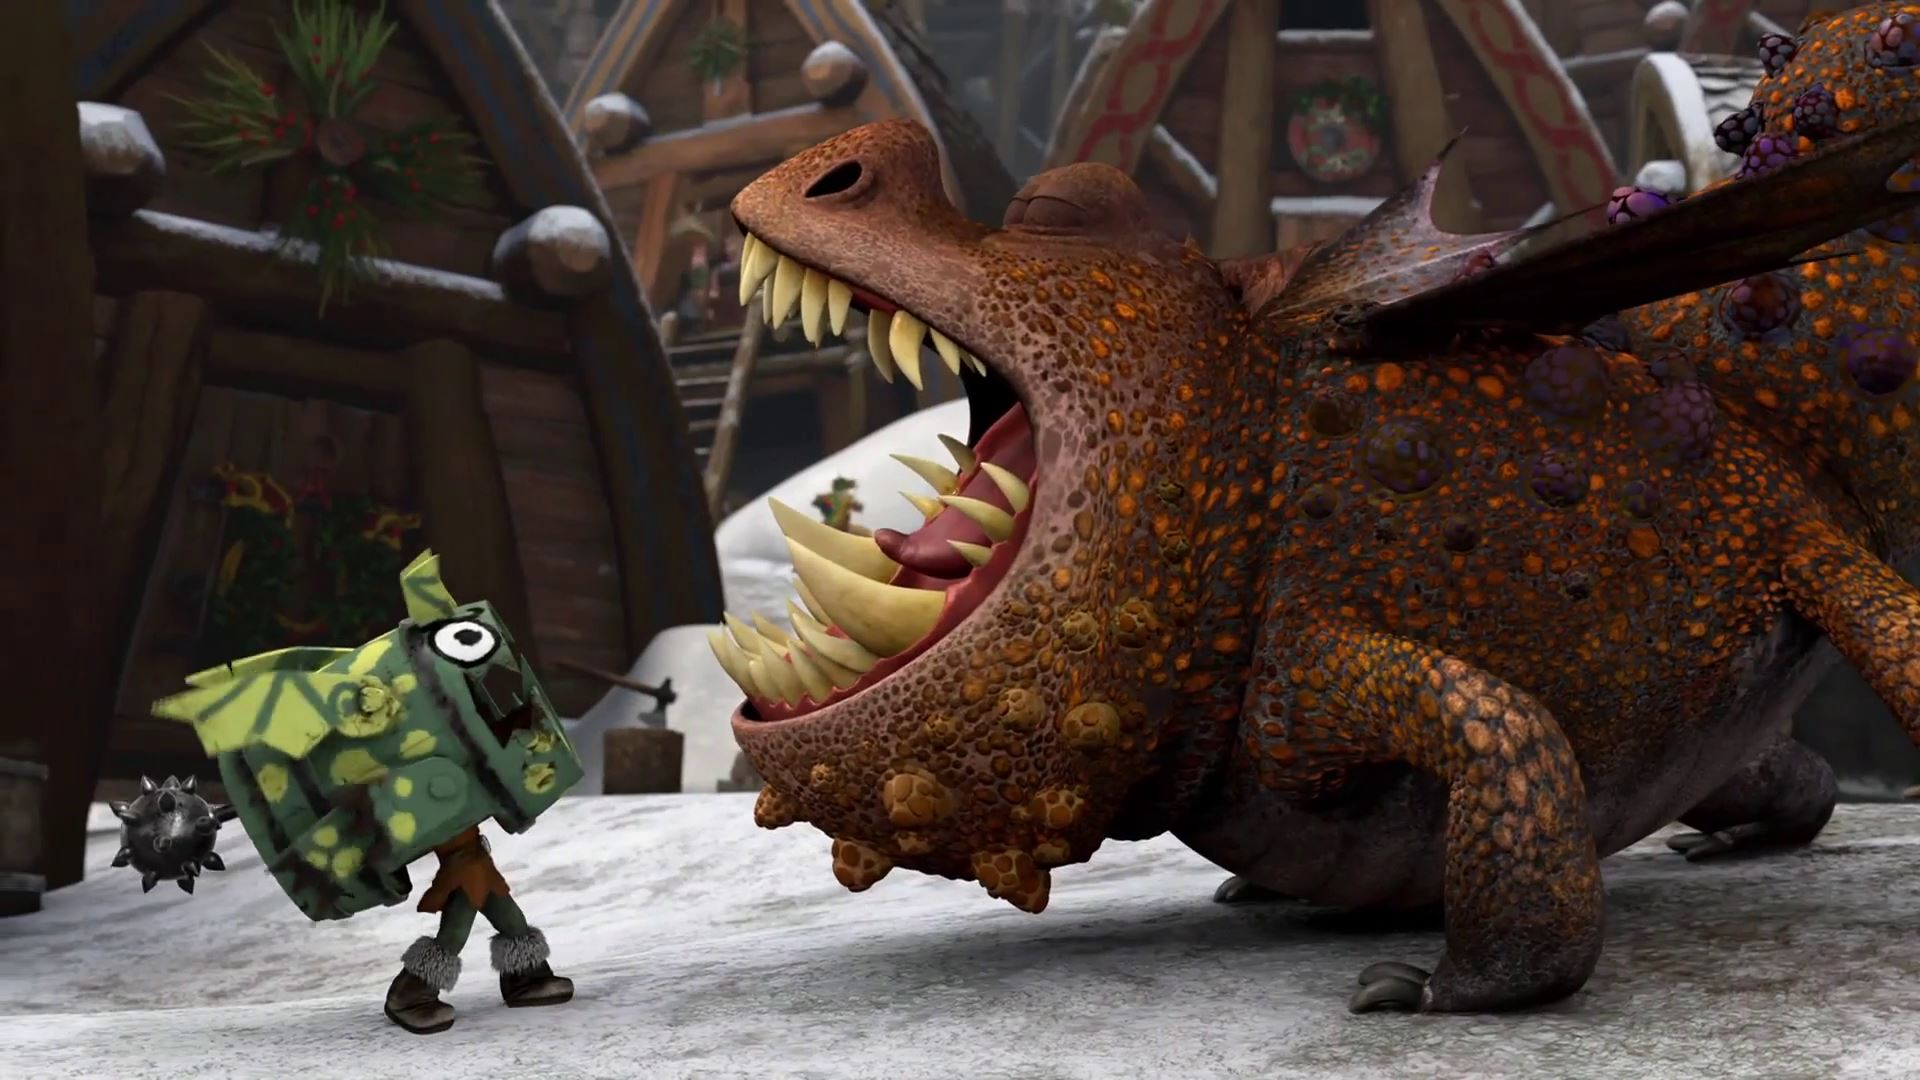 Image  How To Train Your Dragon 003g  How To Train Your Dragon Wiki   Fandom Powered By Wikia